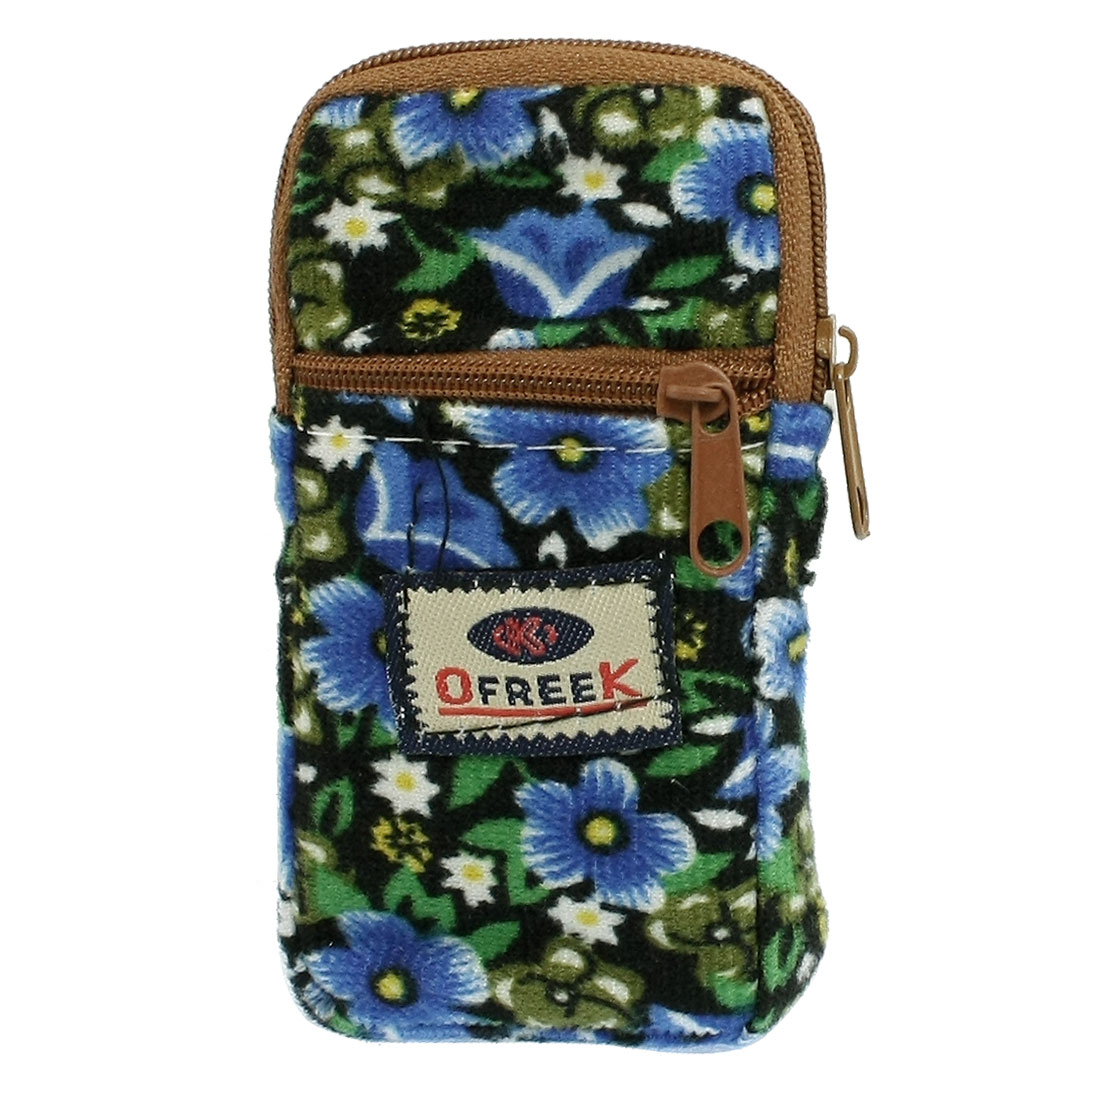 Blue Flowers Print 2 Compartments Zip Closure Cell Phone Pouch